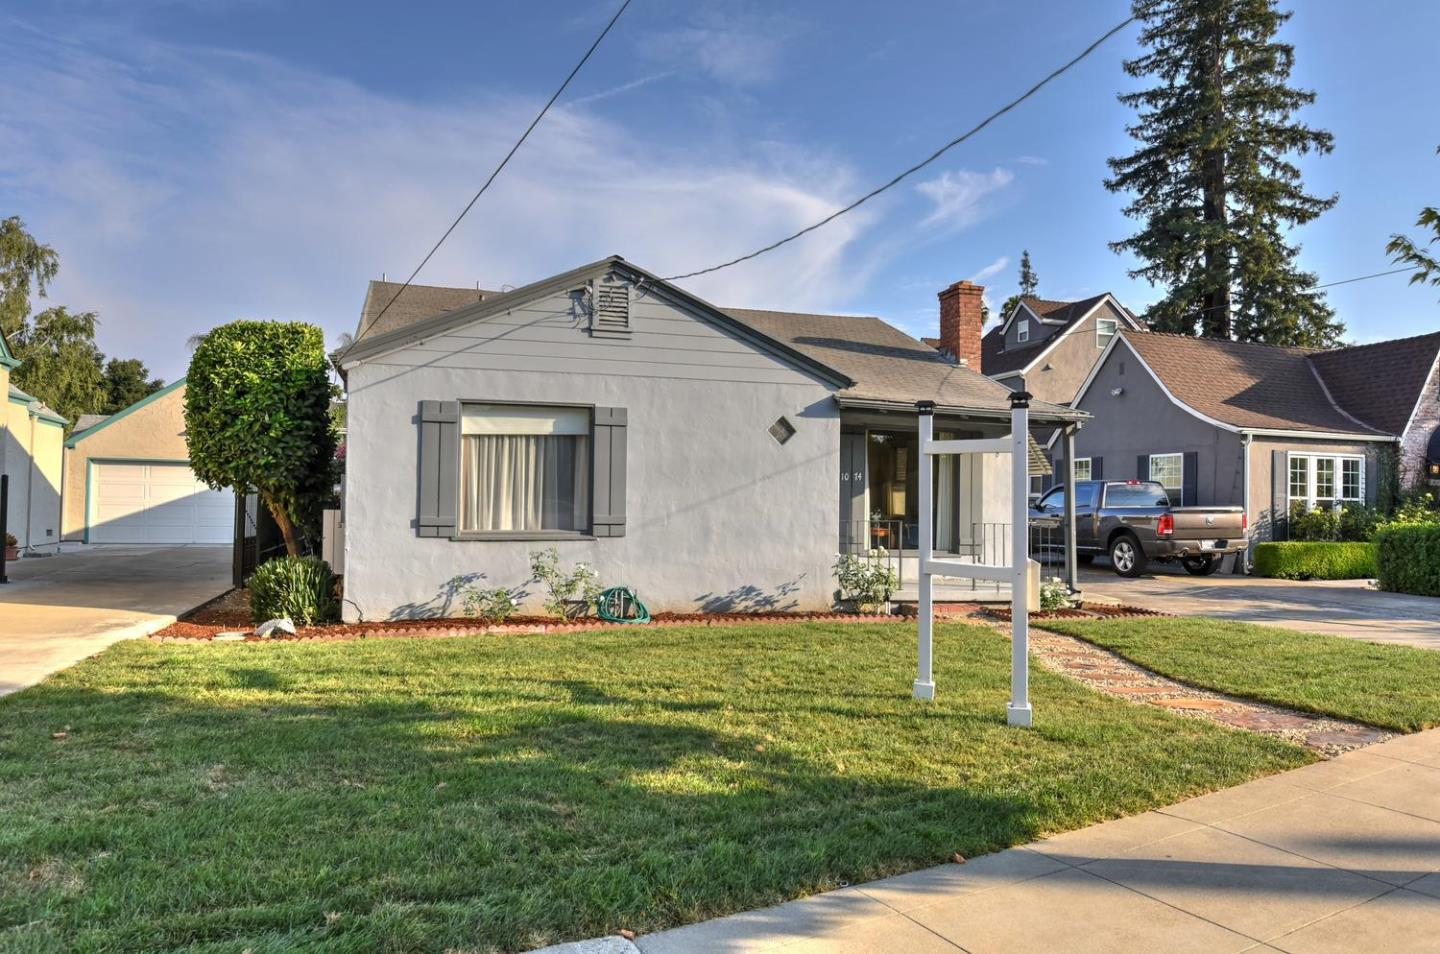 Additional photo for property listing at 1074 Pine Avenue  San Jose, カリフォルニア 95125 アメリカ合衆国